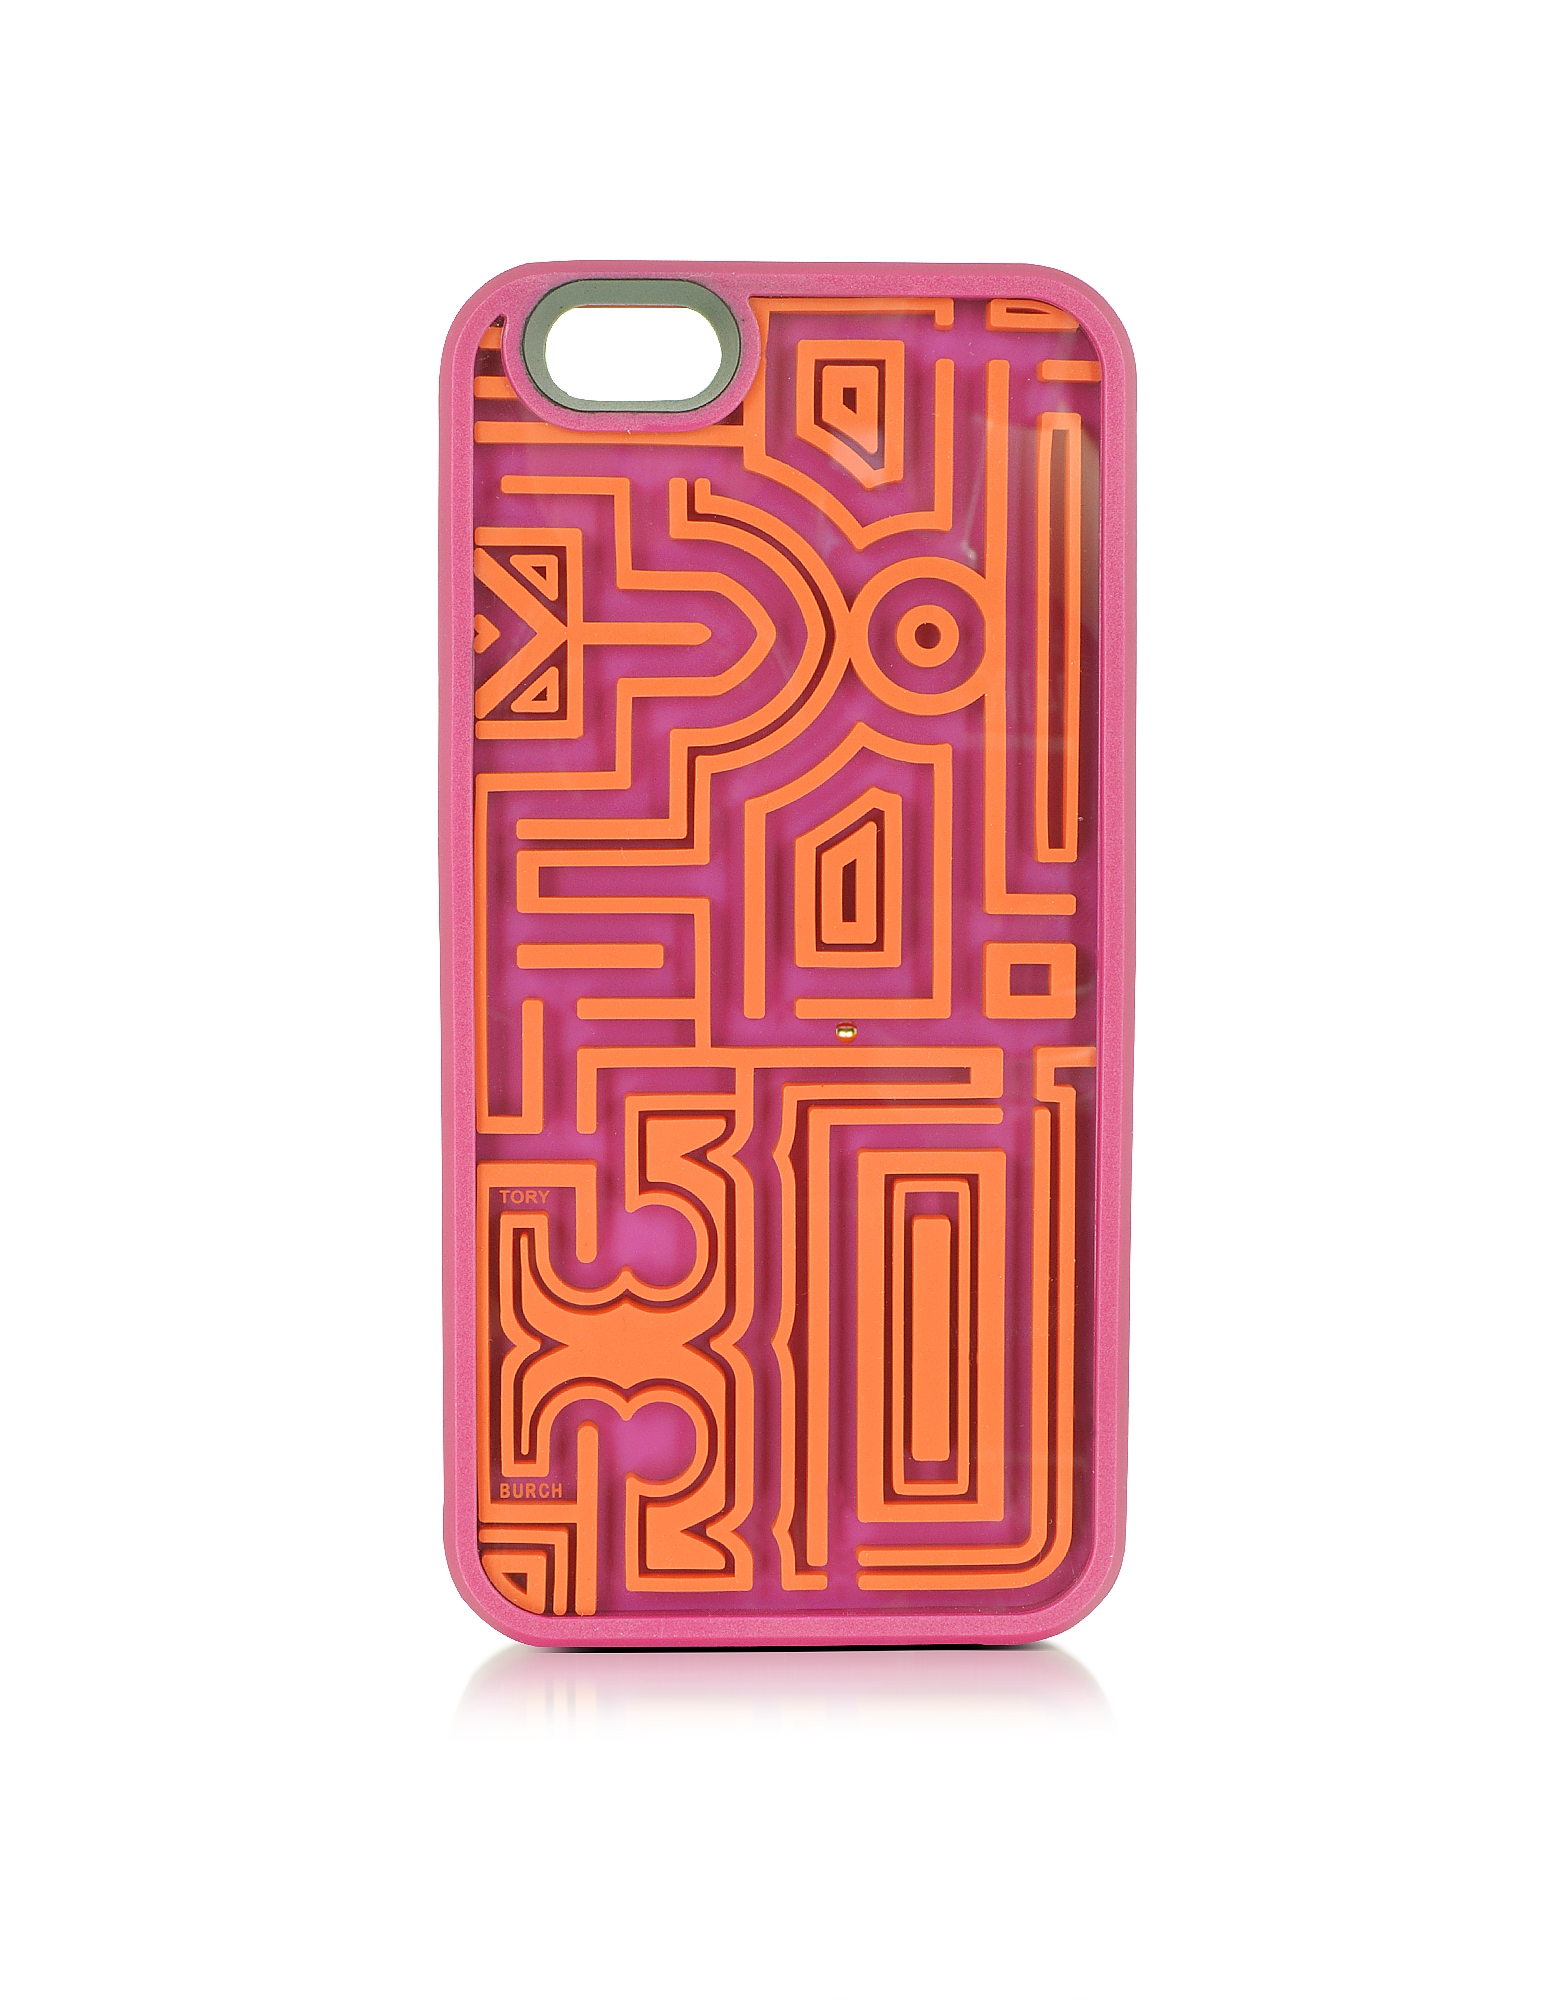 Tory Burch Handbags, Gallery Game Silicon iPhone 6 Cover